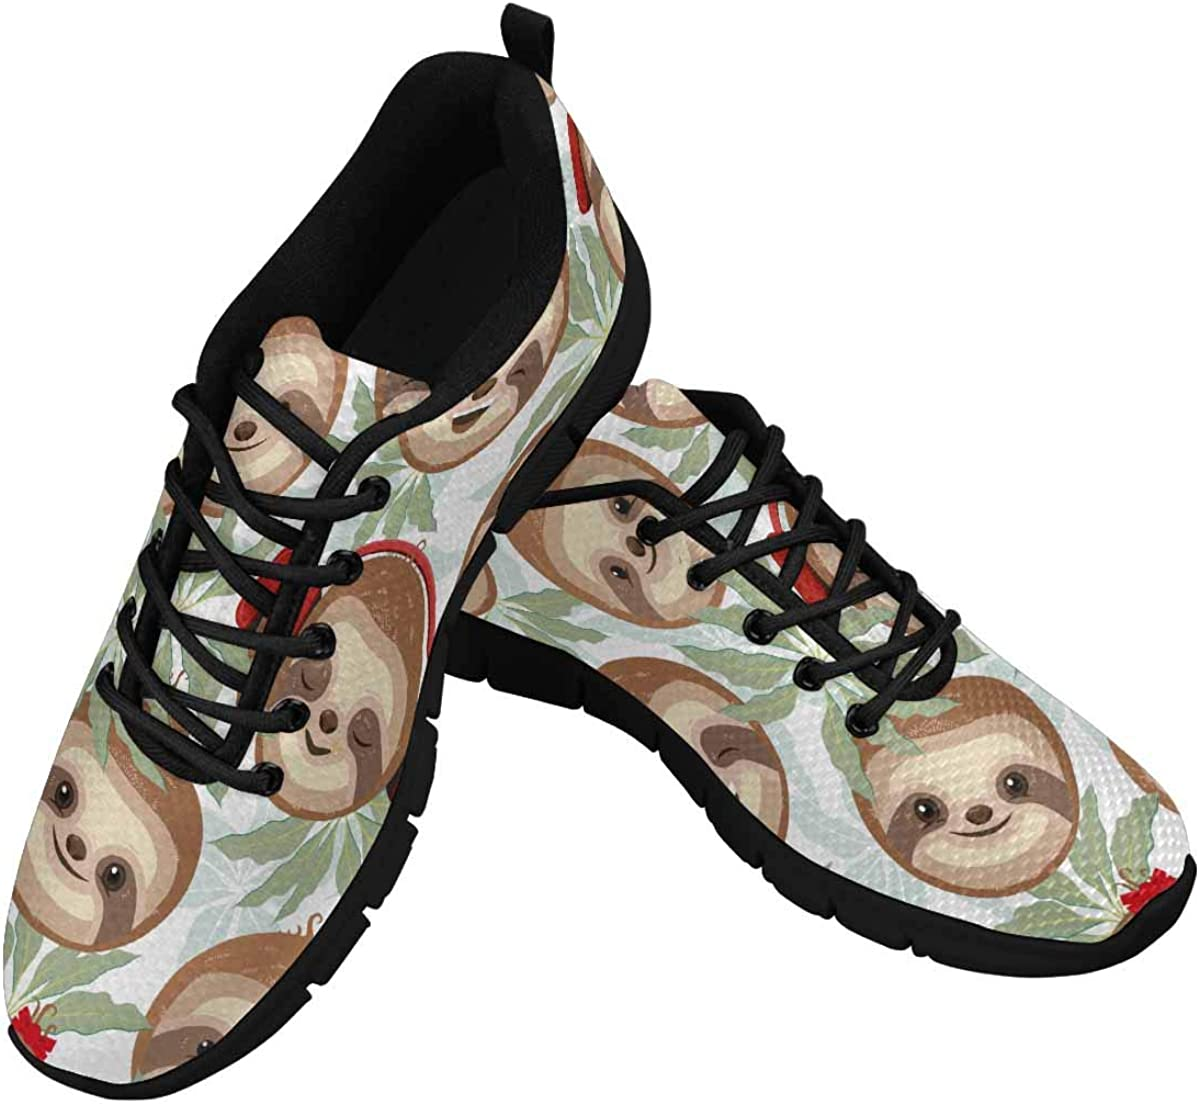 INTERESTPRINT Cheerful Sloths Faces Women's Lightweight Sneakers Mesh Breathable Yoga Shoes